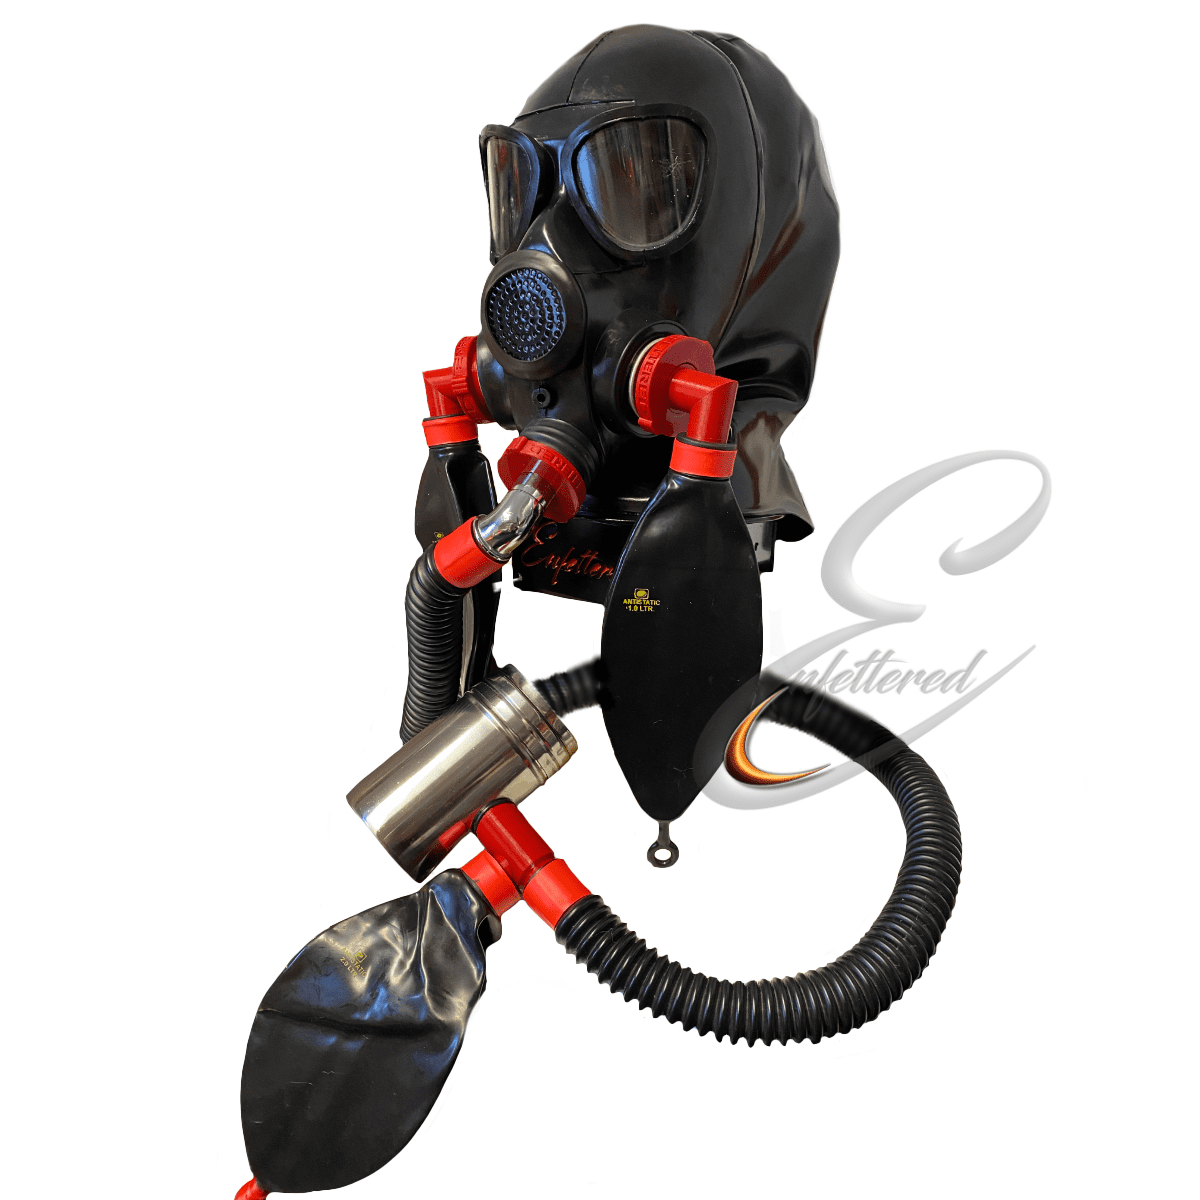 Enfettered Gas Mask Hood with Angled Rebreathers and Aroma System